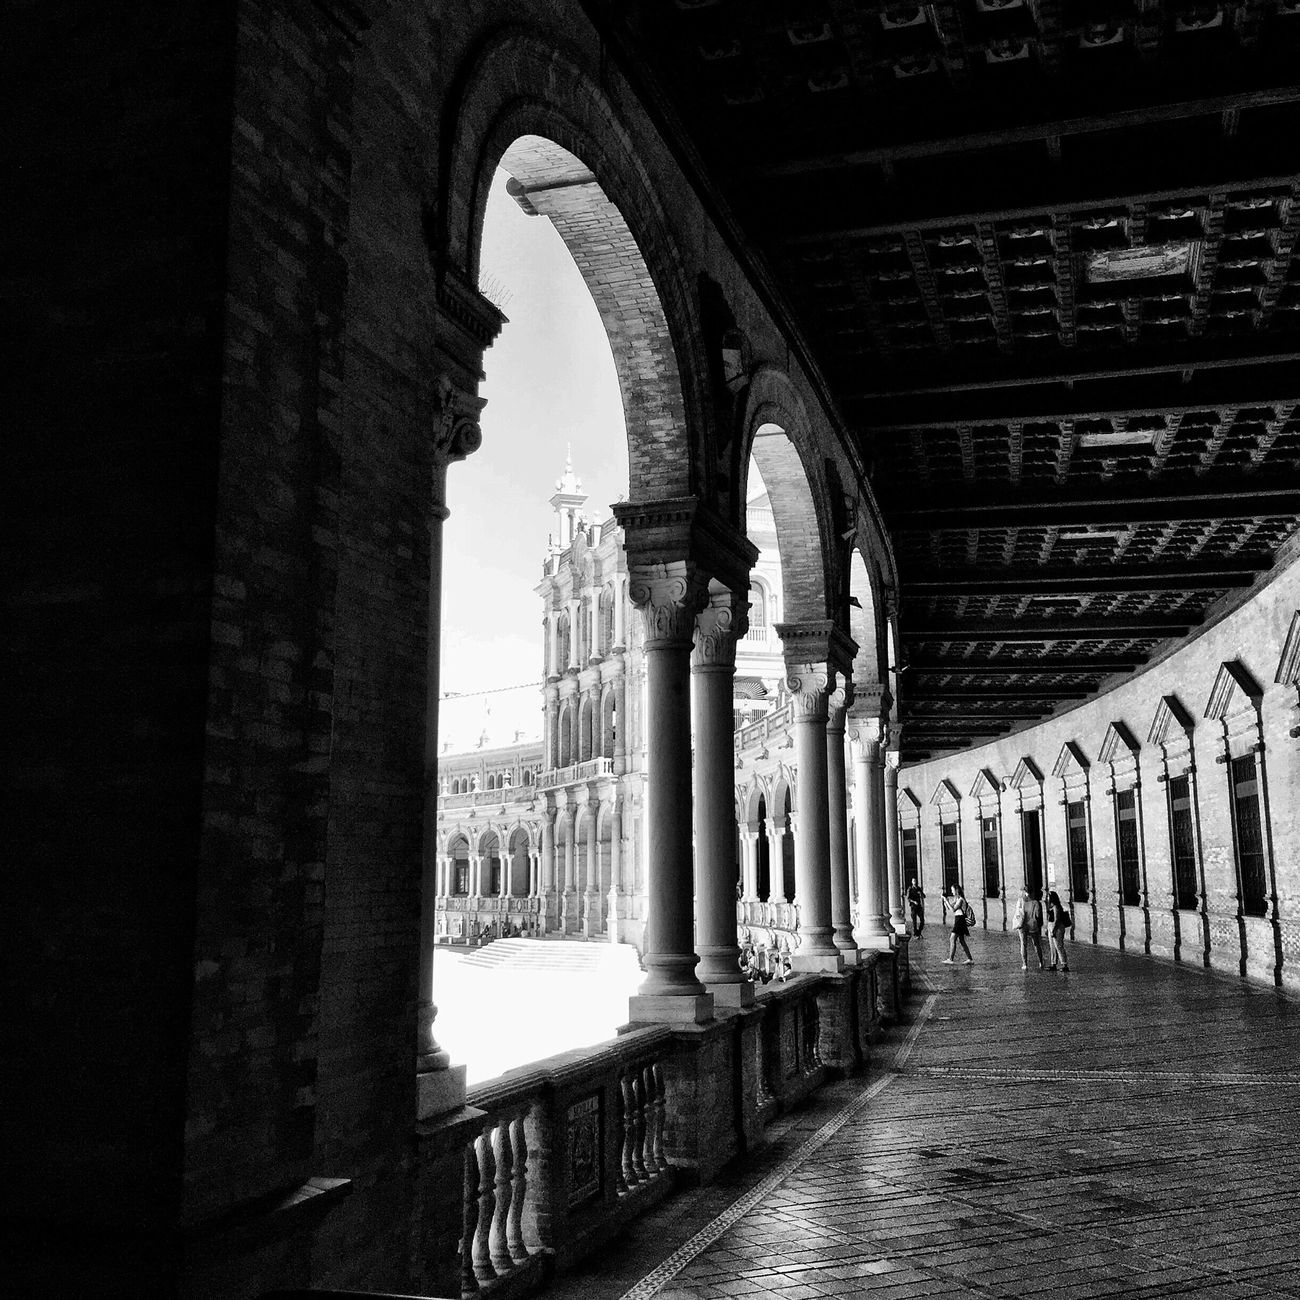 El otro día en la Plaza de España Sevilla Bw_collection Black And White Streetphoto_bw Blackandwhite Monochrome EyeEm Best Shots Arquitecture Movilgrafias